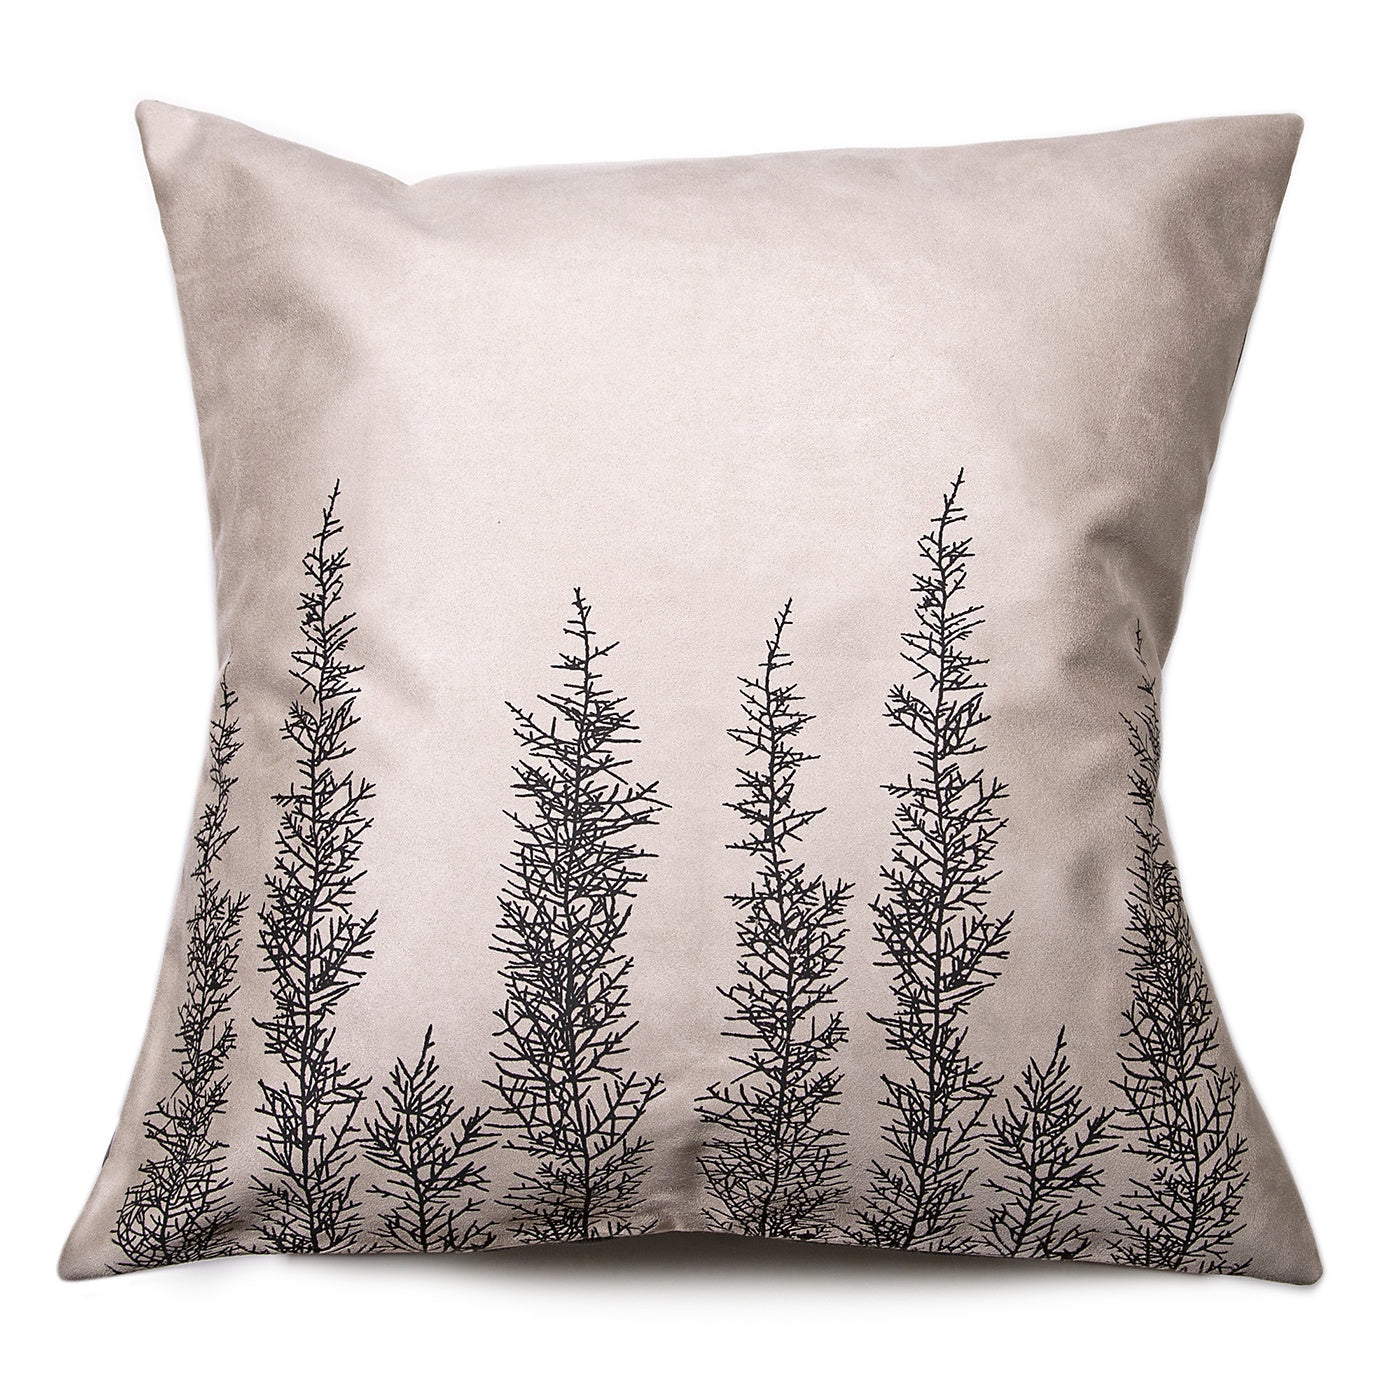 Stalley Textile Co. - Cushion Cover - Huon Pine - Black on Cream